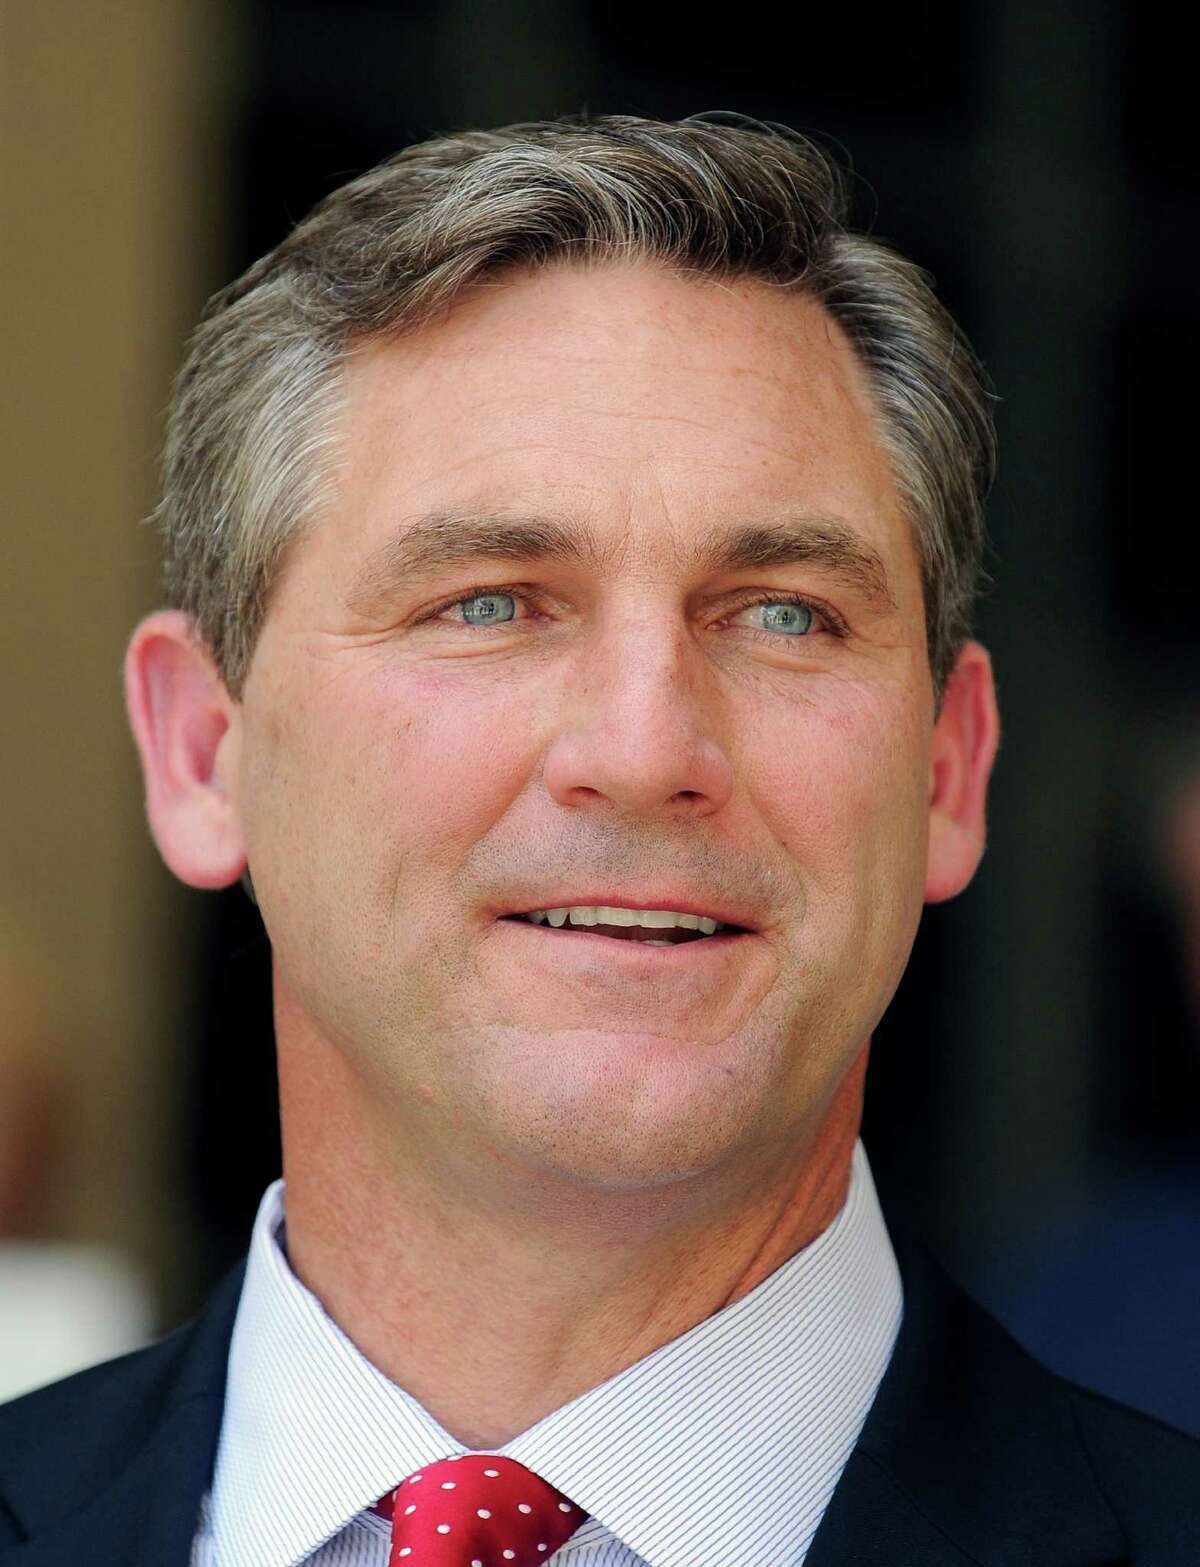 Texas Republican primary candidate for the U.S. Senate Craig James speaks at a press conference Thursday, May 24, 2012, in Houston. Also vying for the party's nomination are Lt. Gov. David Dewhurst, ex-Dallas Mayor Tom Leppert and Ted Cruz. (AP Photo/Pat Sullivan)